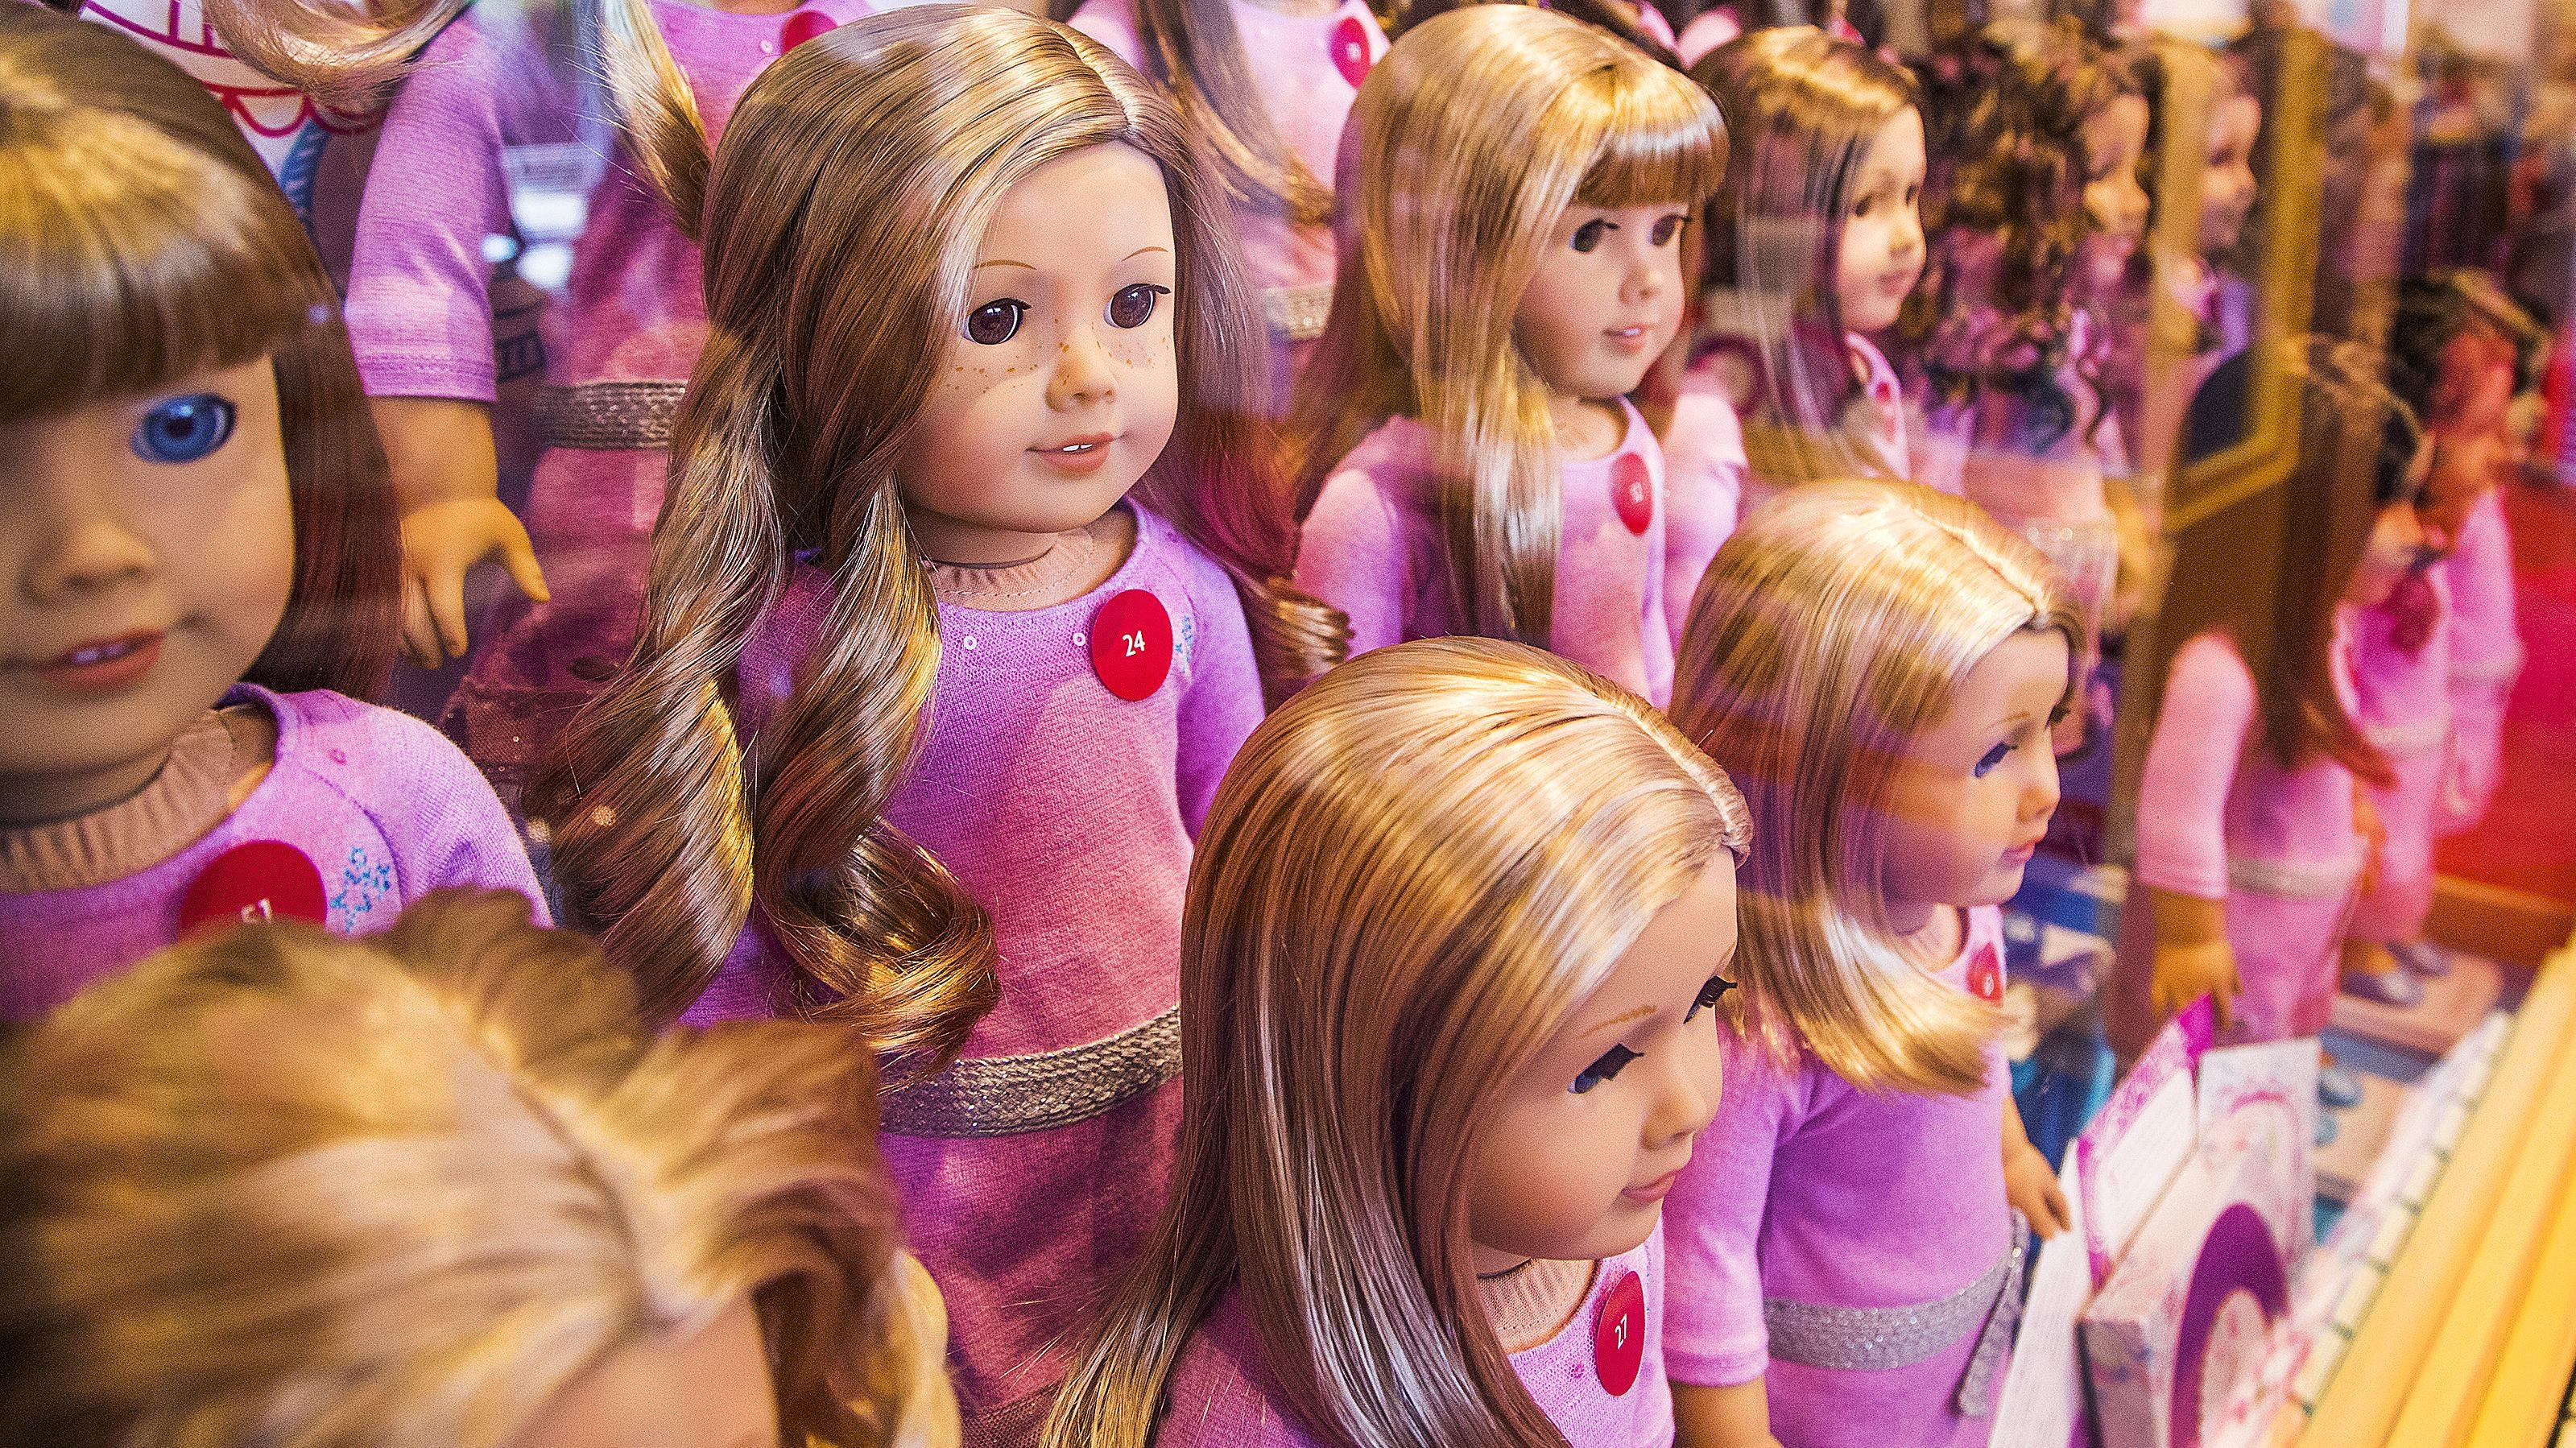 American Girl dolls spark live-action movie. MGM and Mattel partner for 'passionate' fans